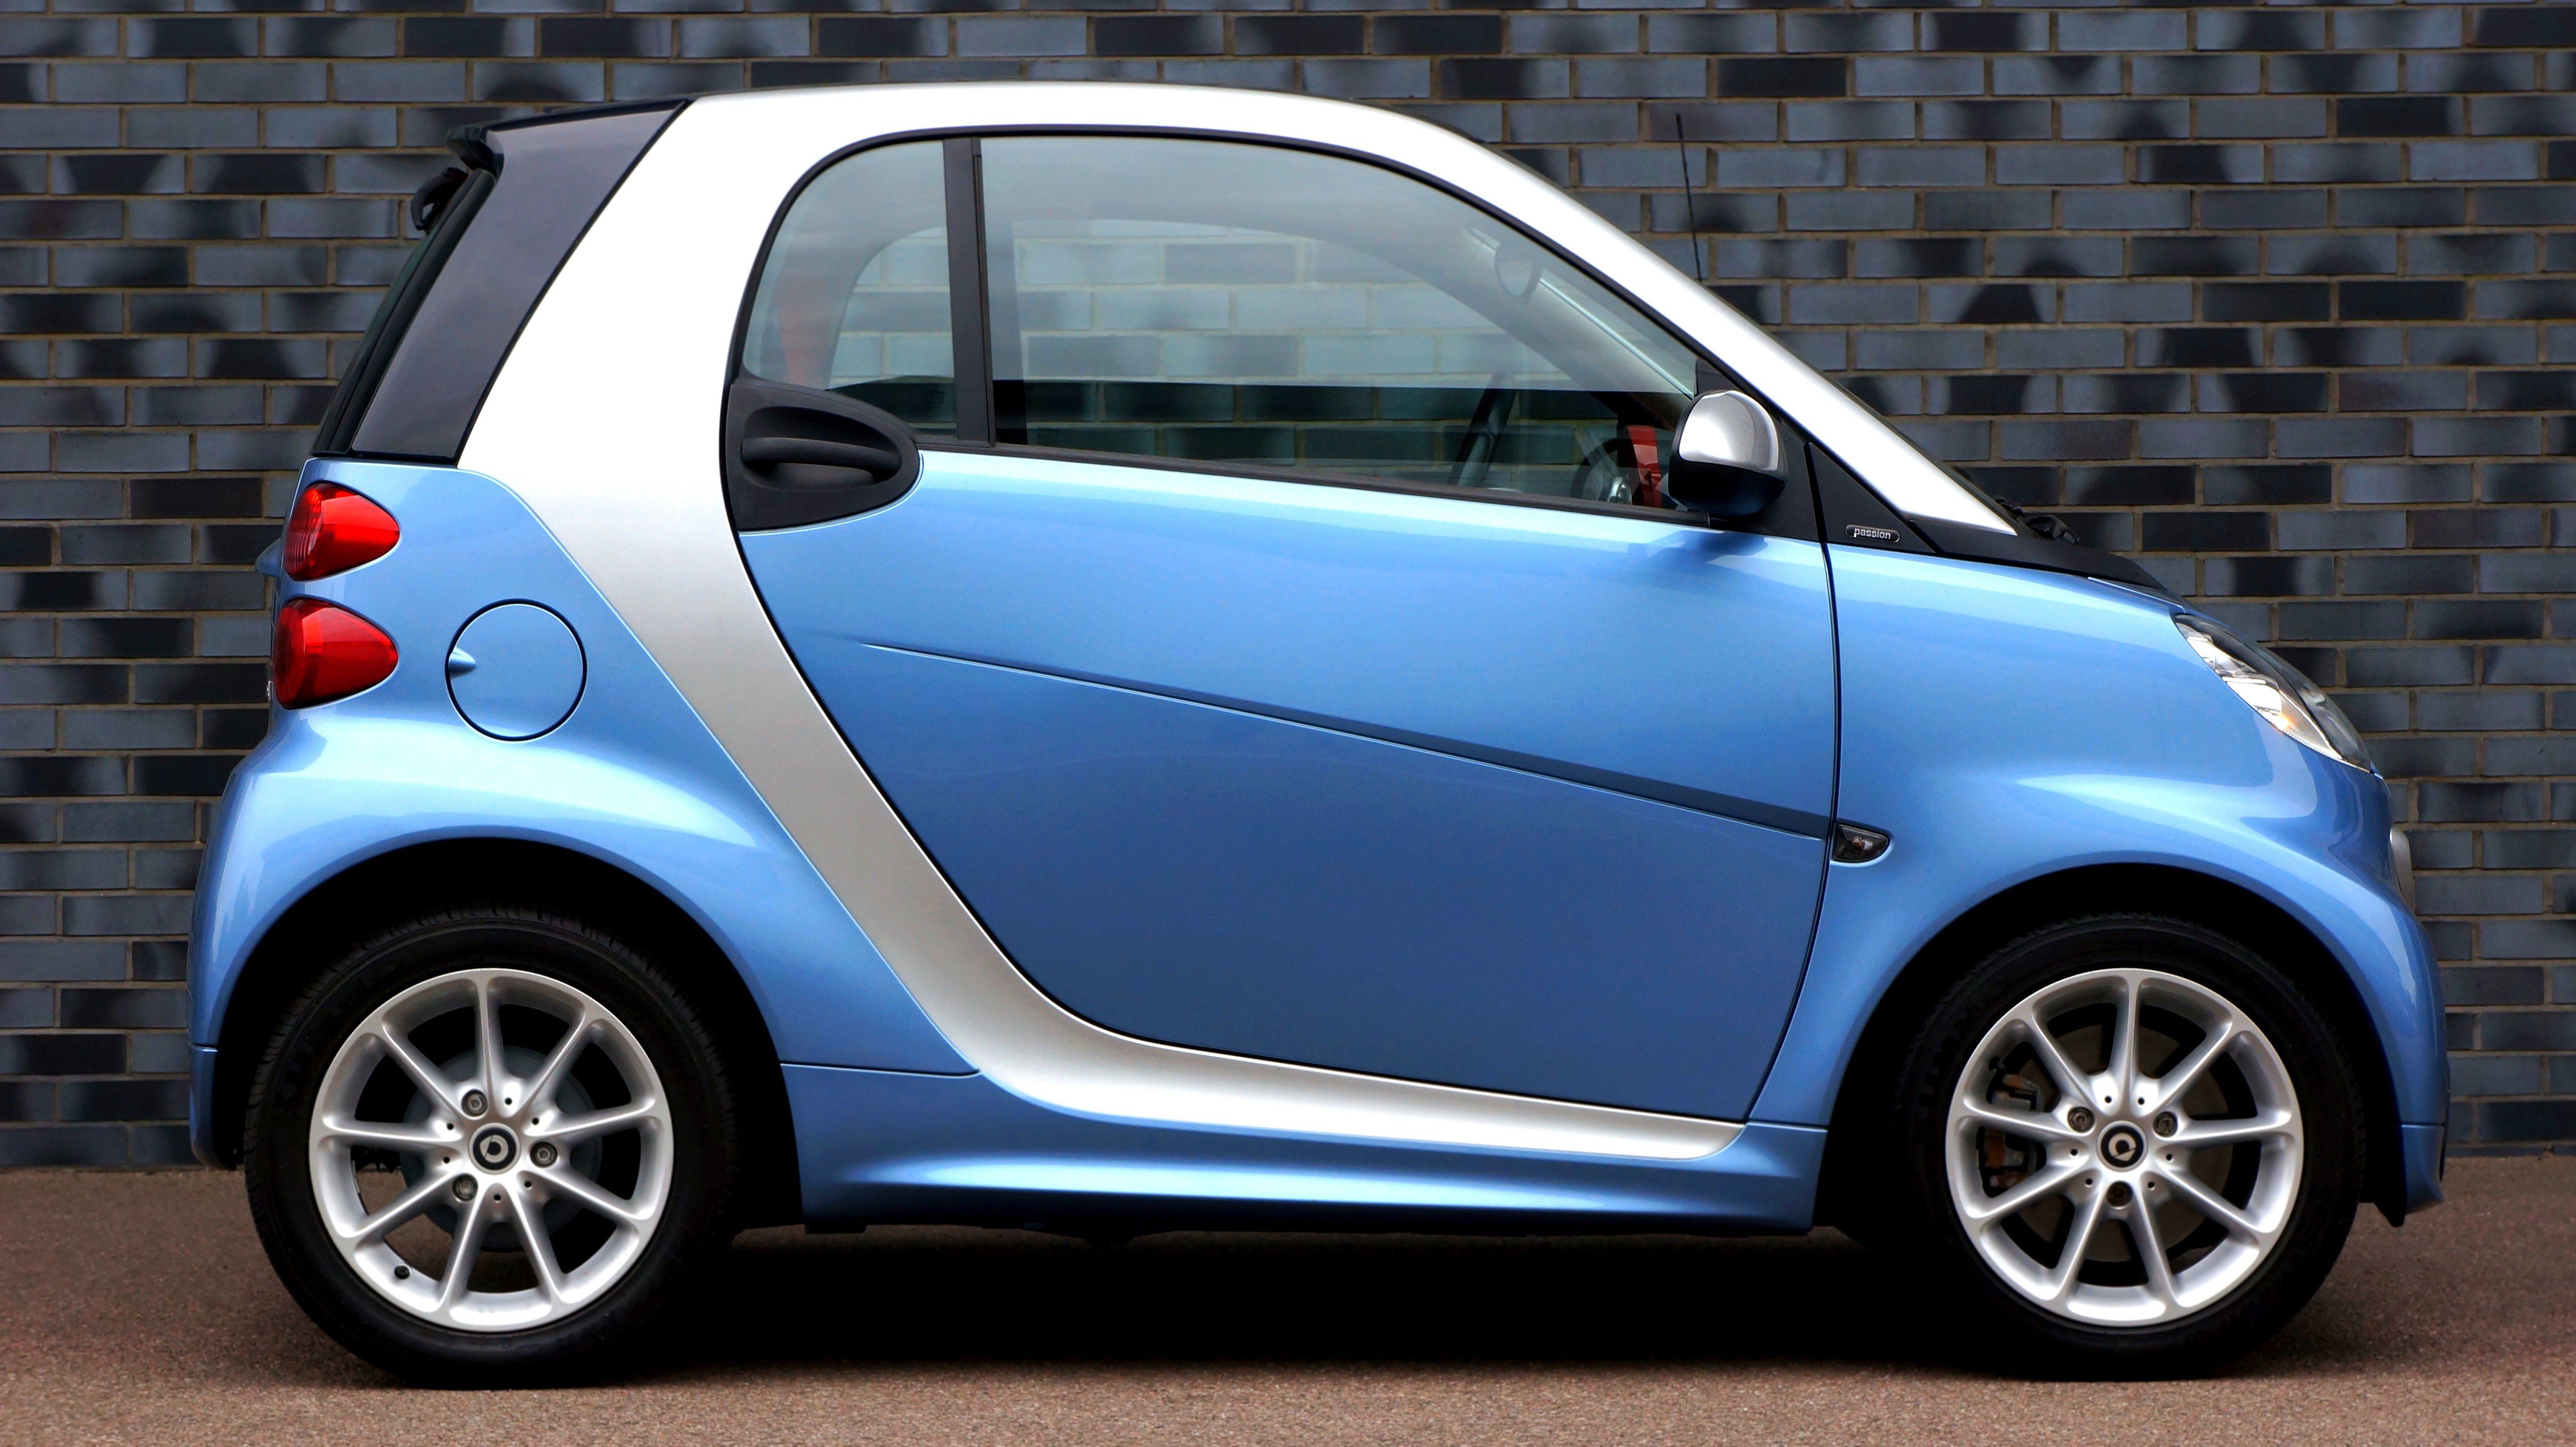 Latest 1000 Interesting Small Car Photos · Pexels · Free Stock Free Download